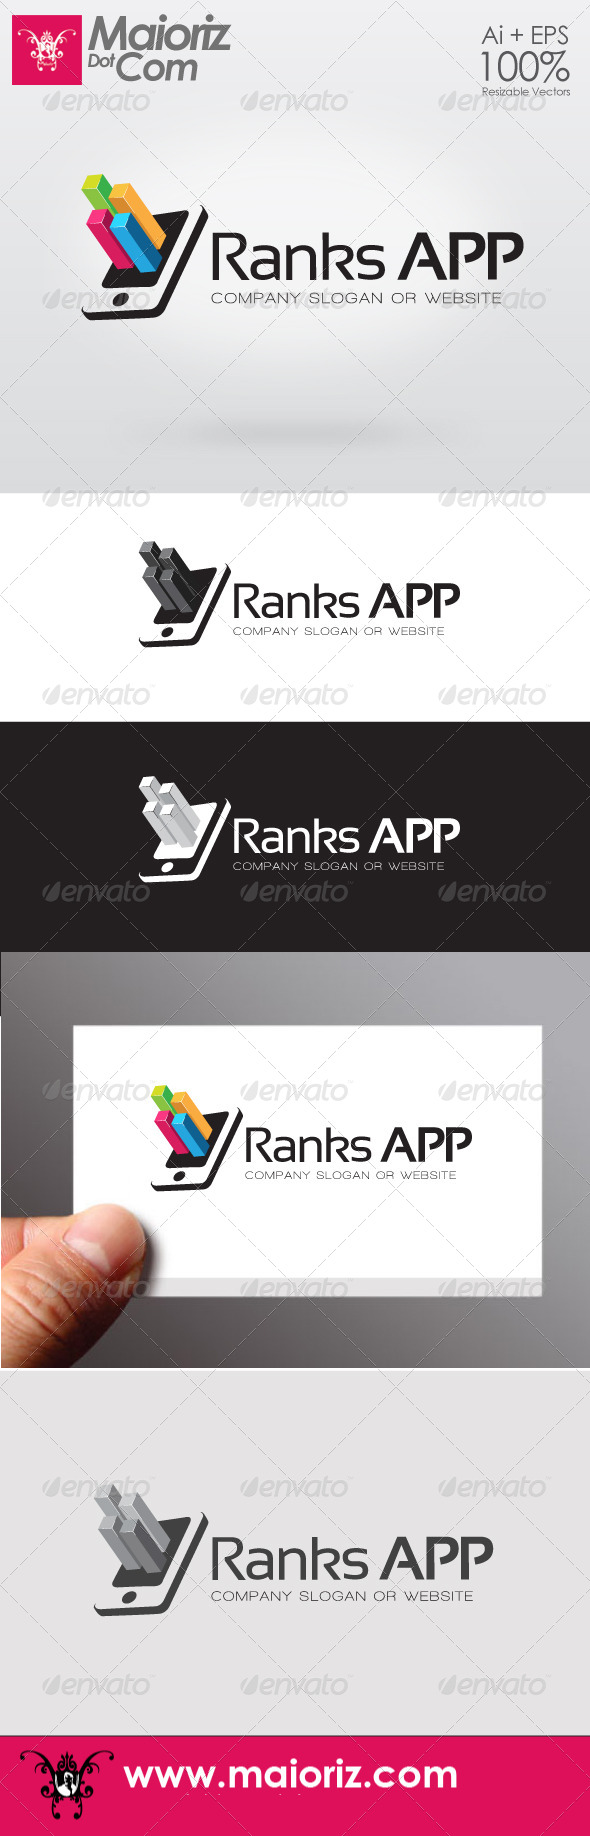 Ranks App Logo - 3d Abstract